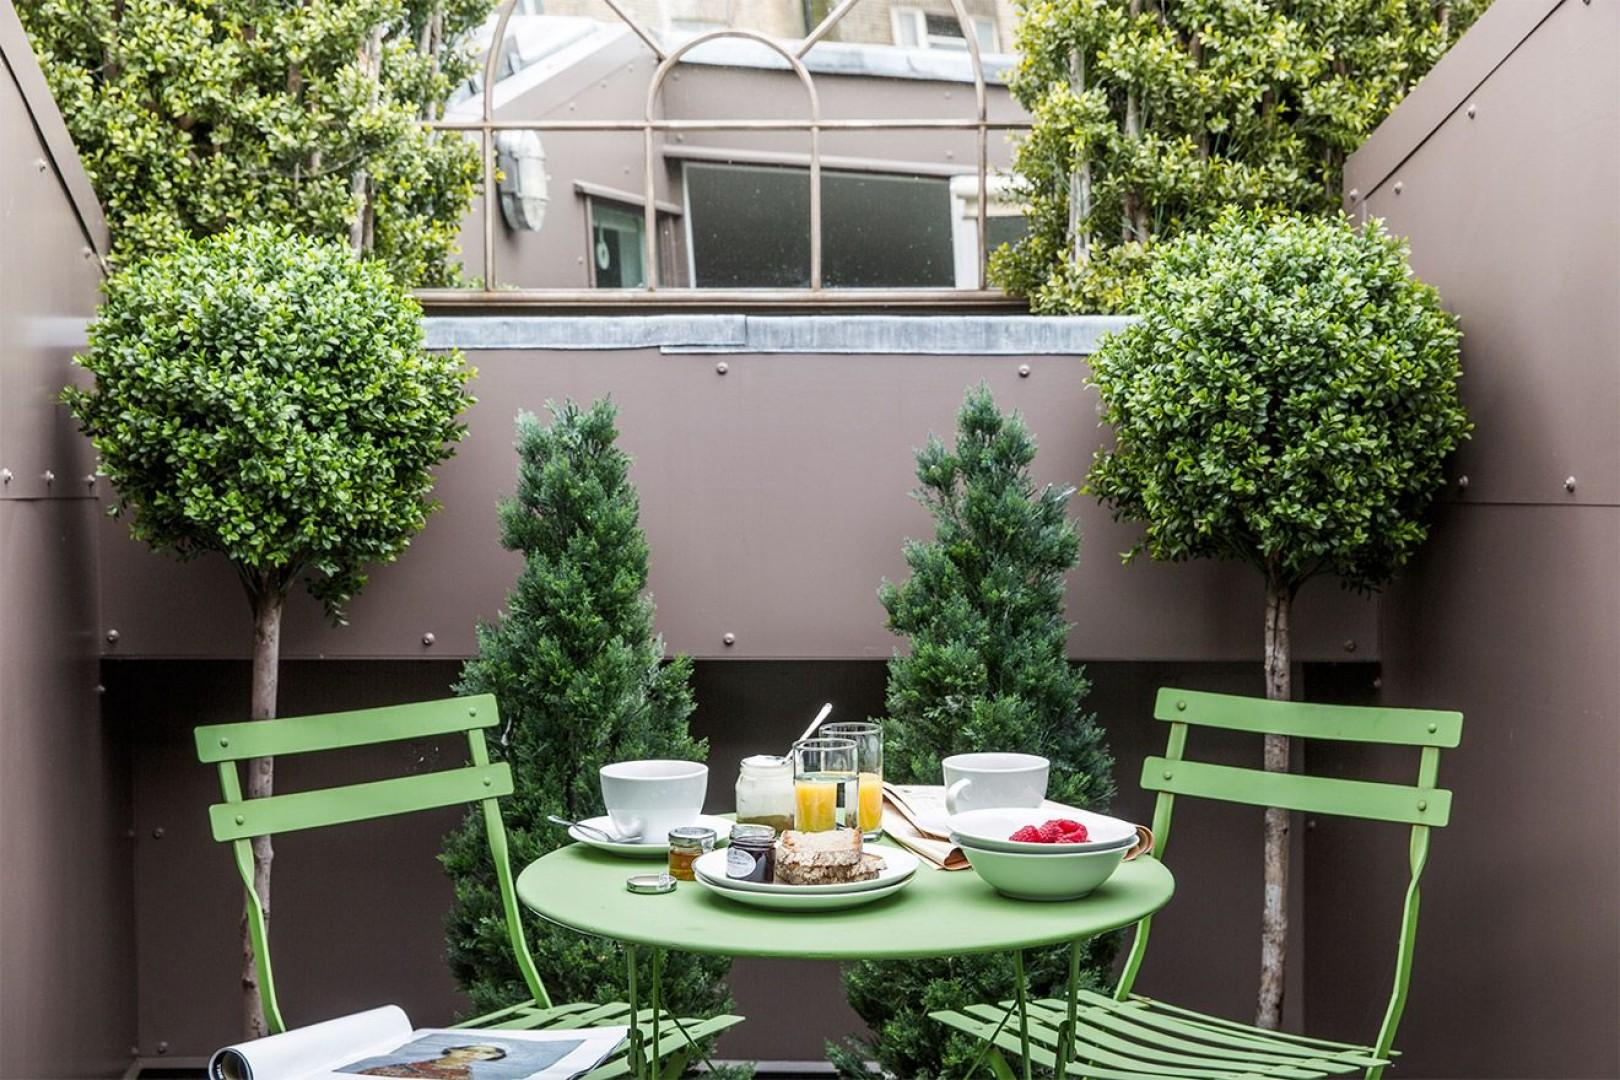 Breakfast on the roof terrace of the Middleton mews home